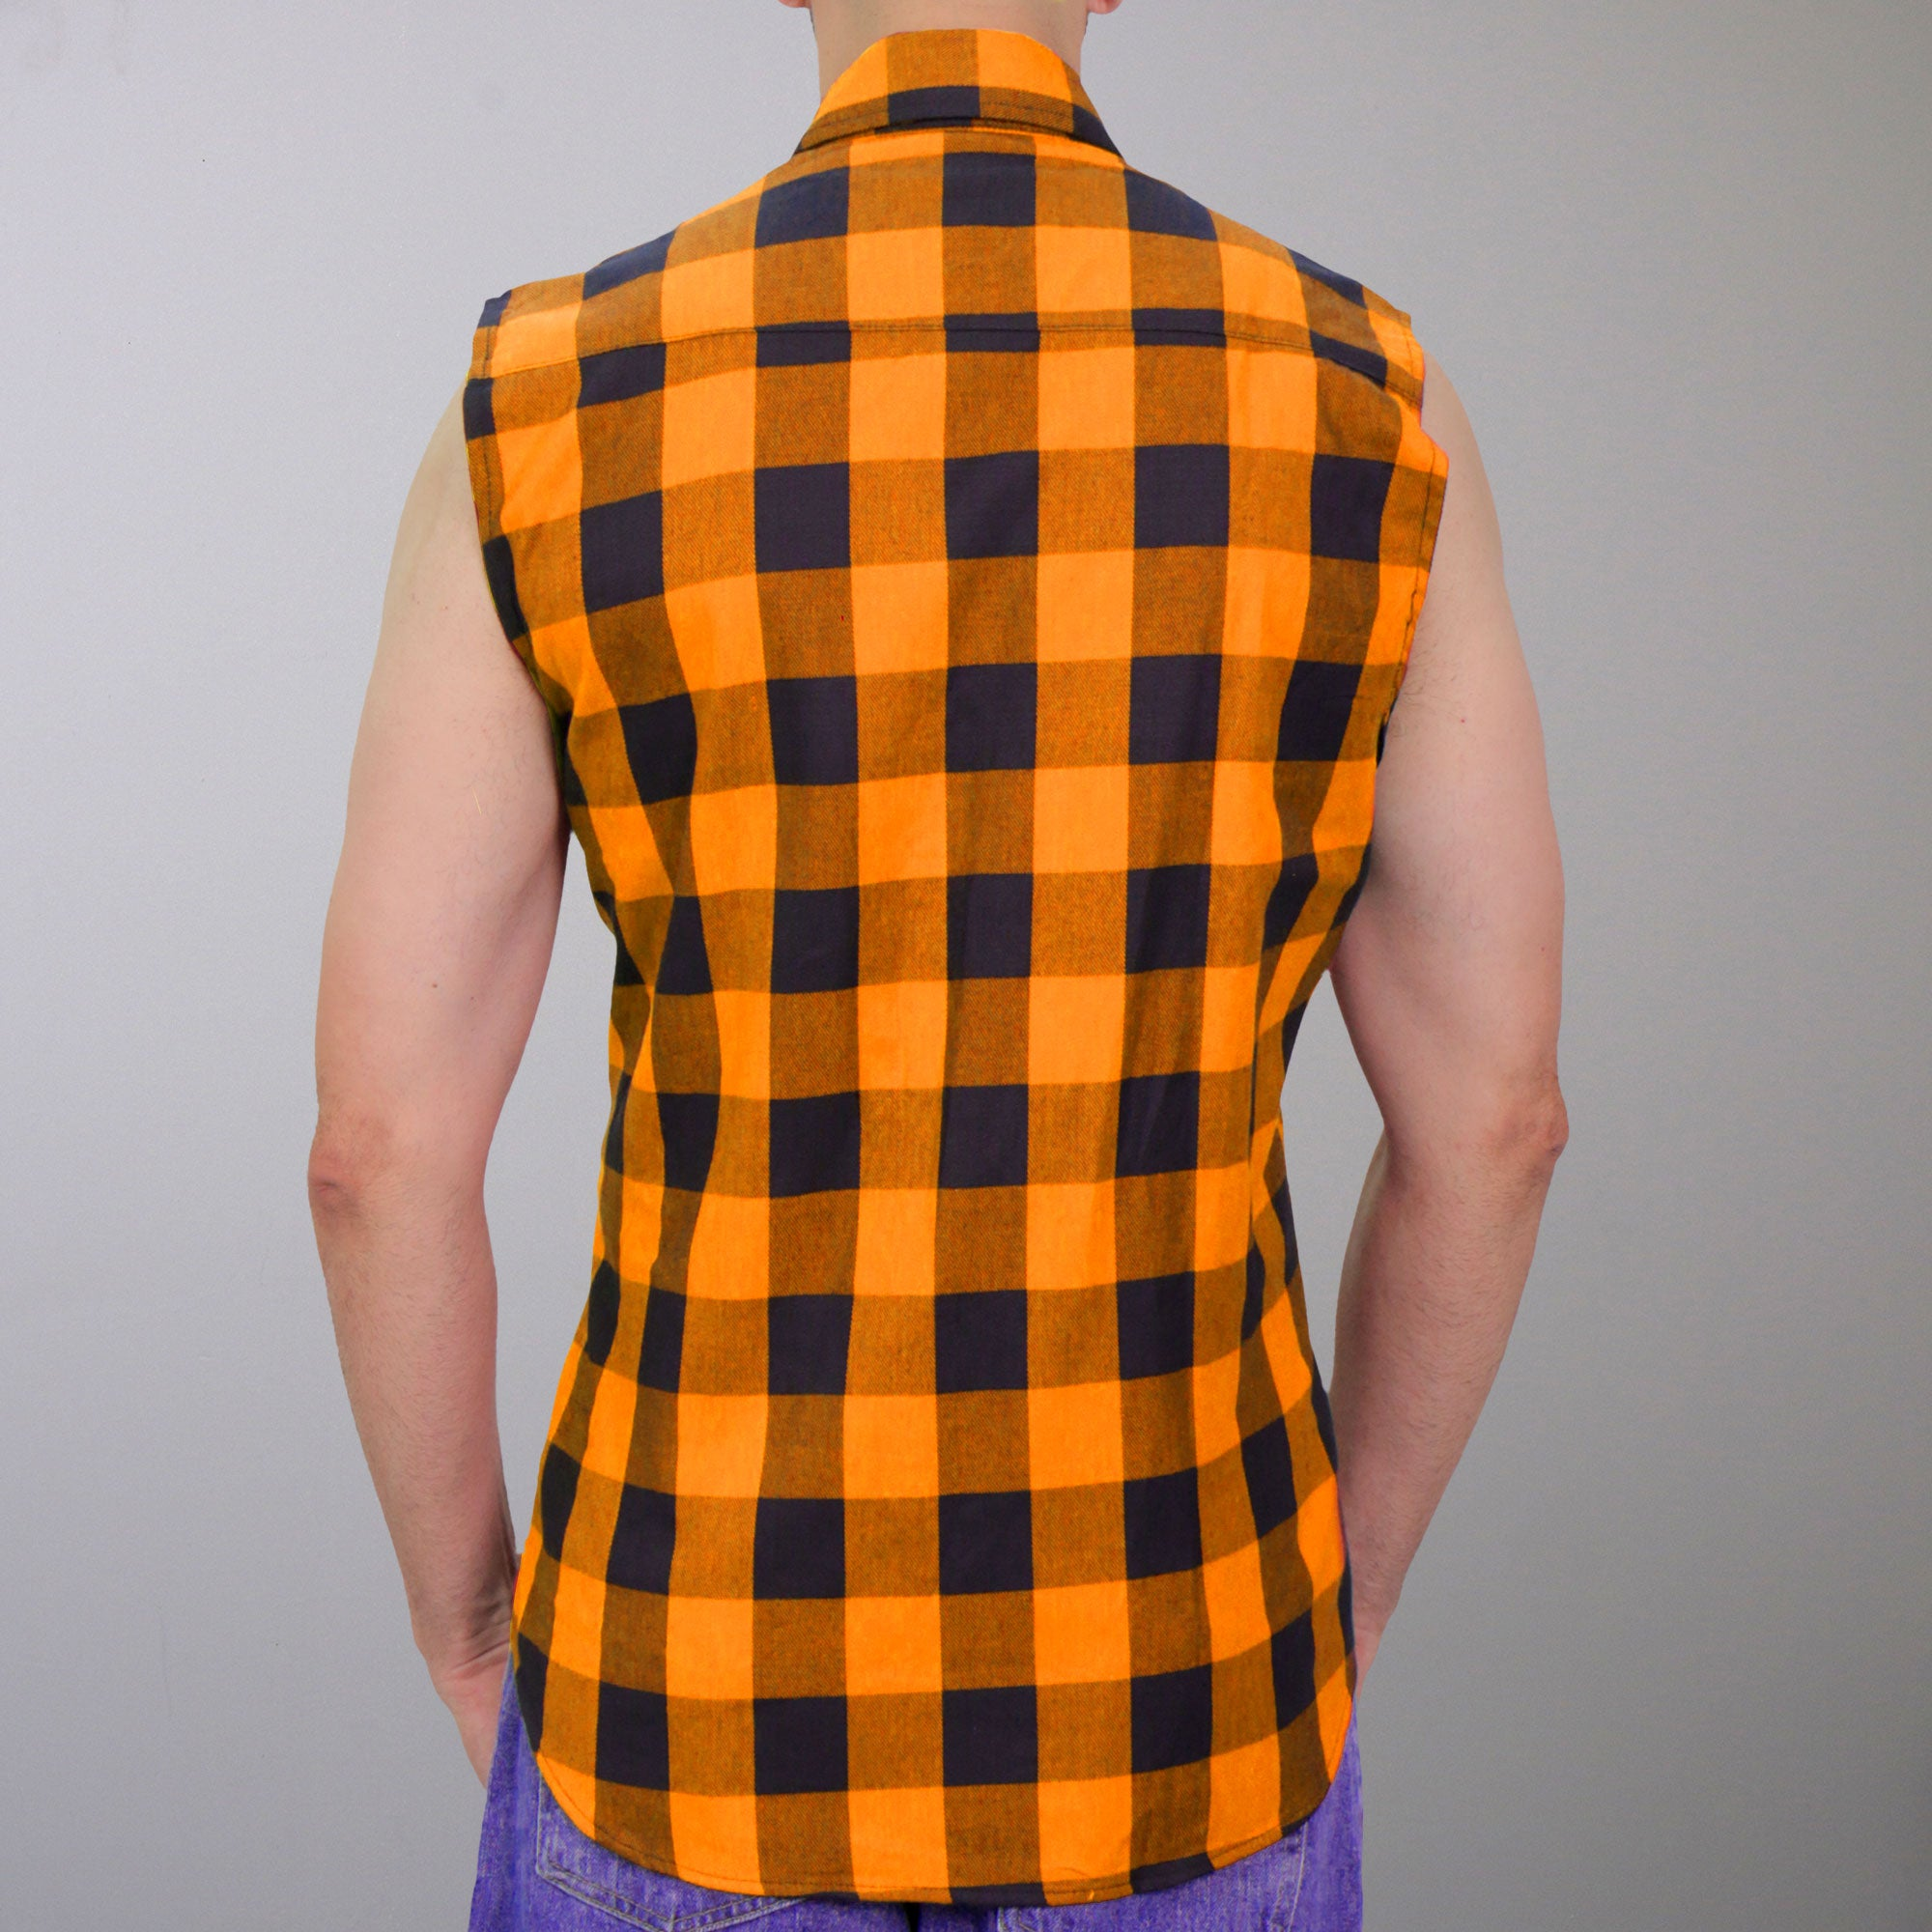 Hot Leathers Flannel No Sleeve Black & Orange